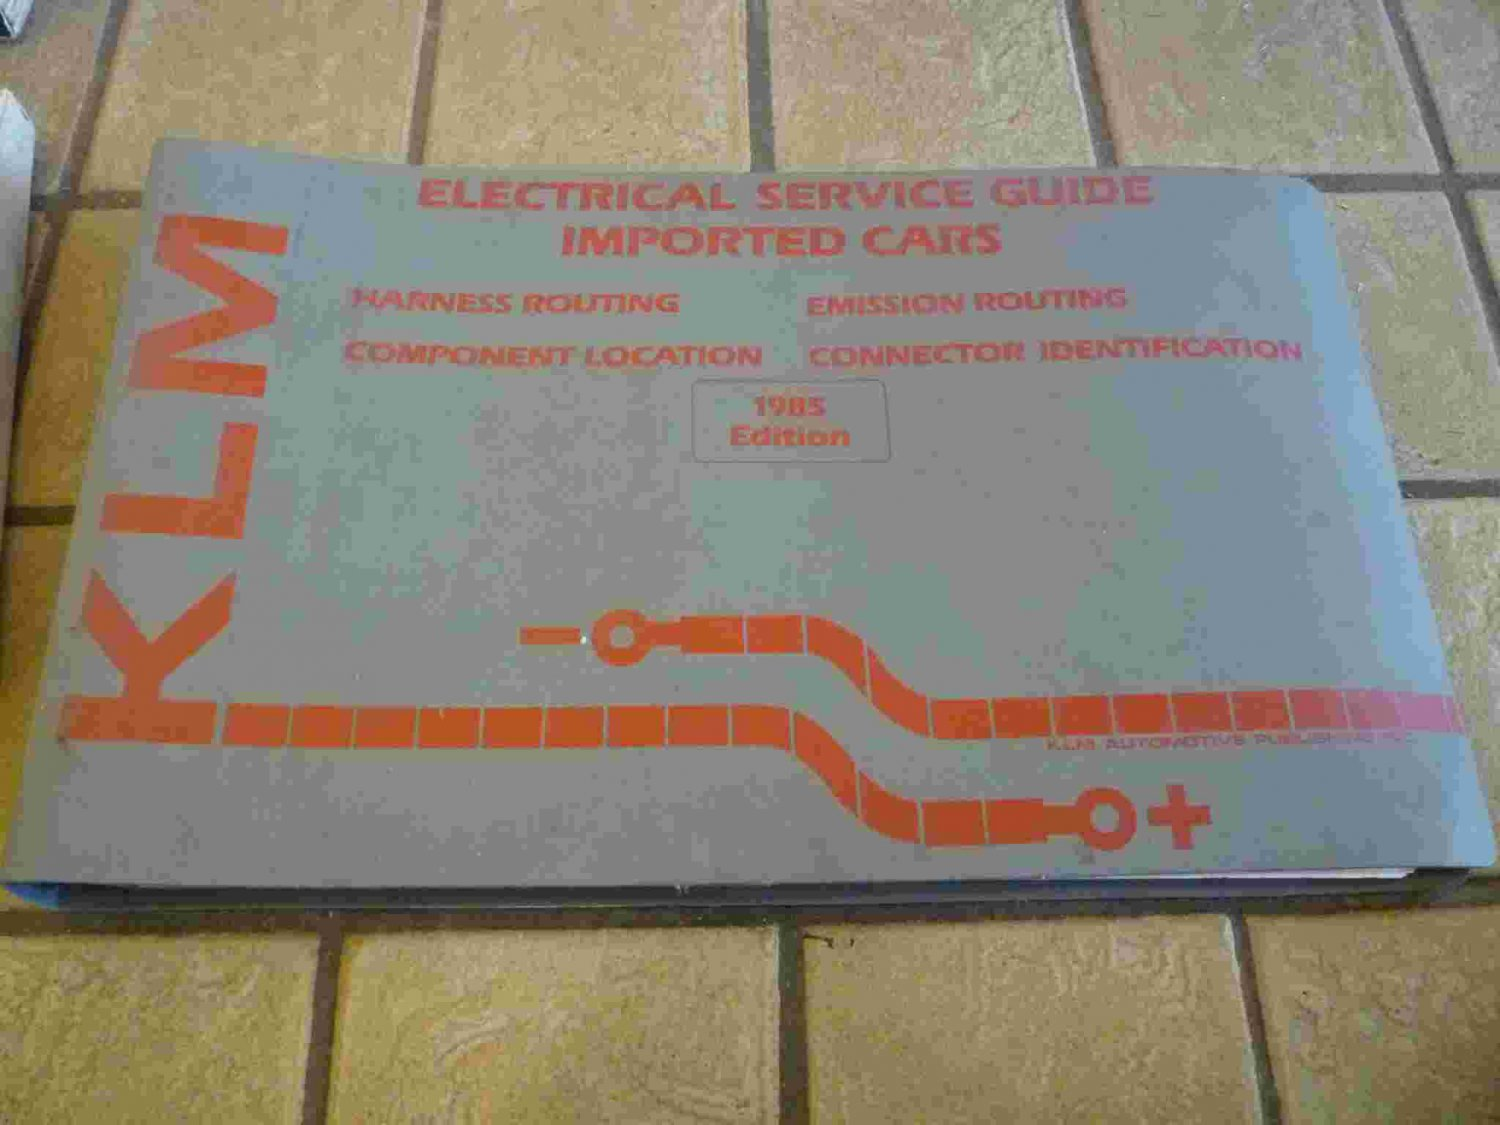 1985 KLM Electrical Service Guide Imported Cars Manual